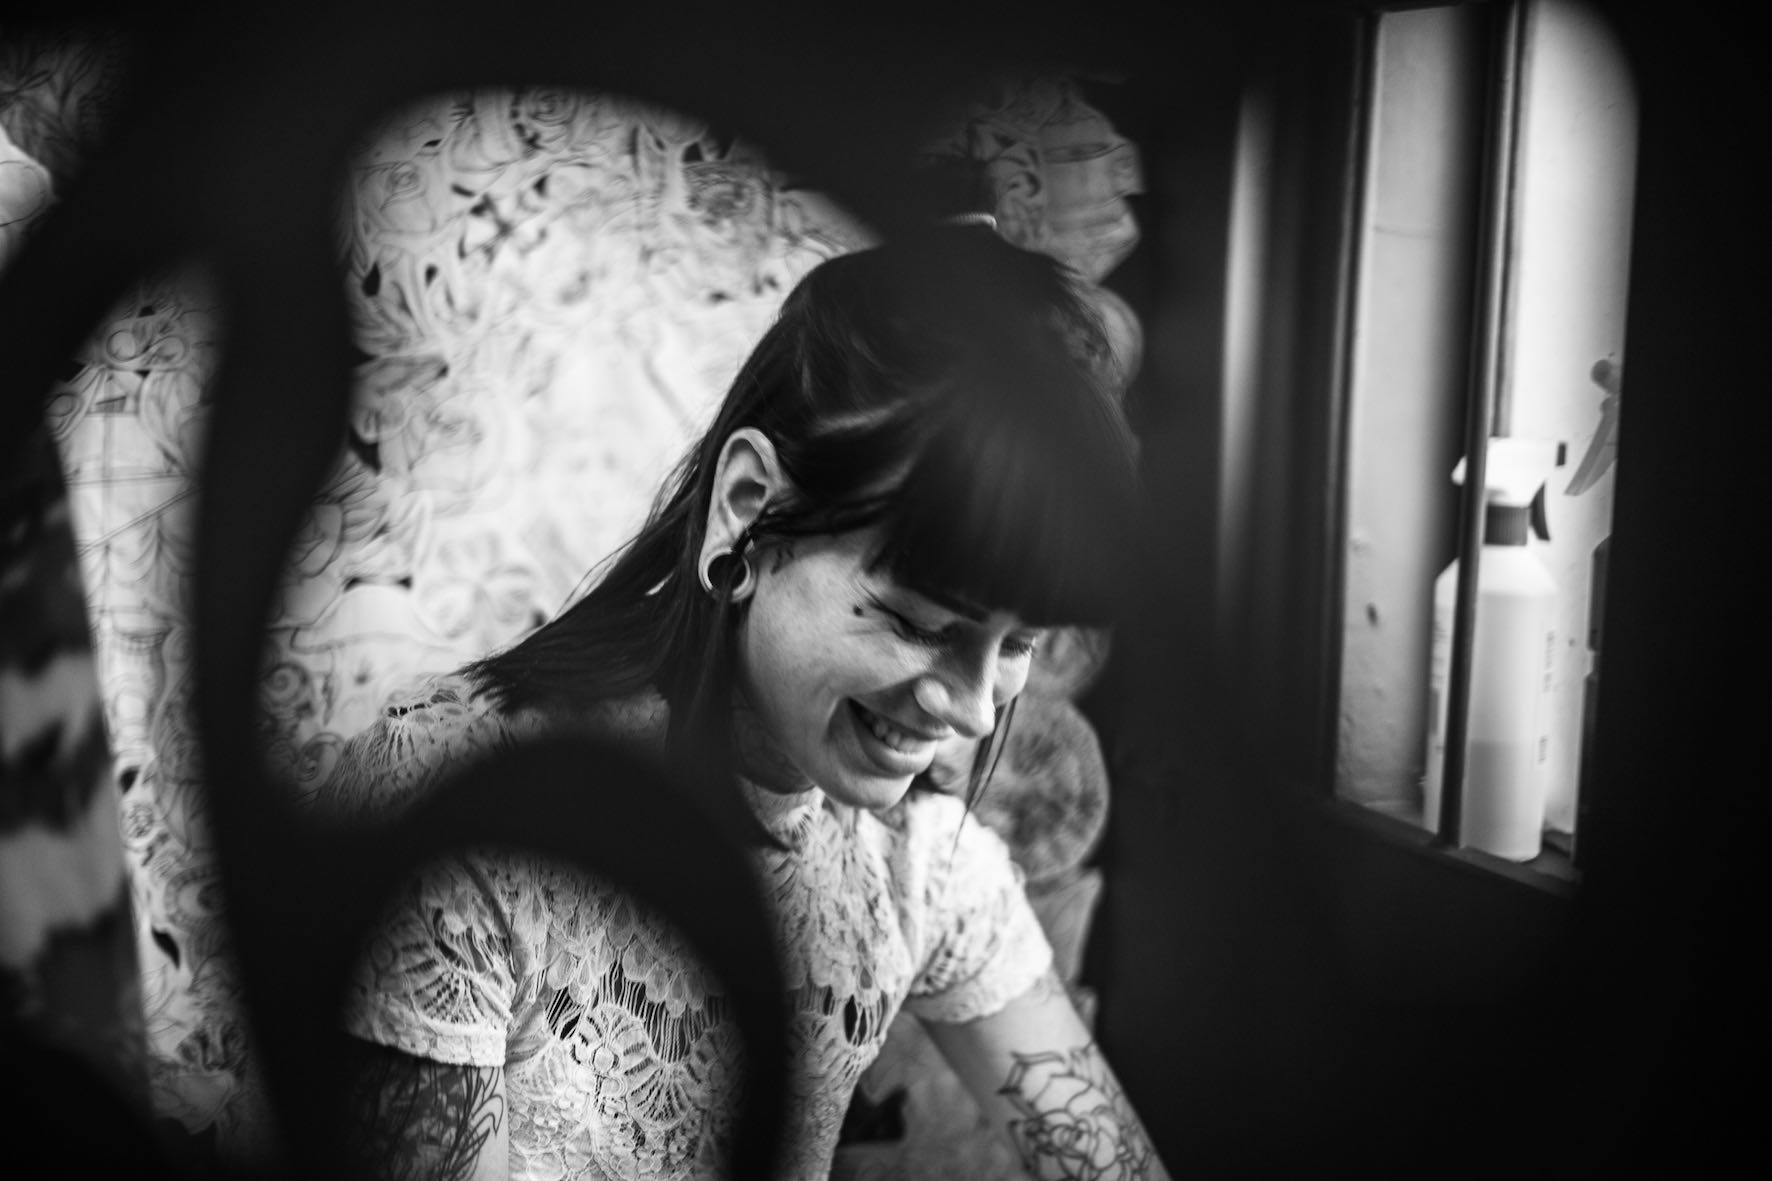 Tattoo artist interview with Chelsea-Rae Marsh working our of The Heart Collective